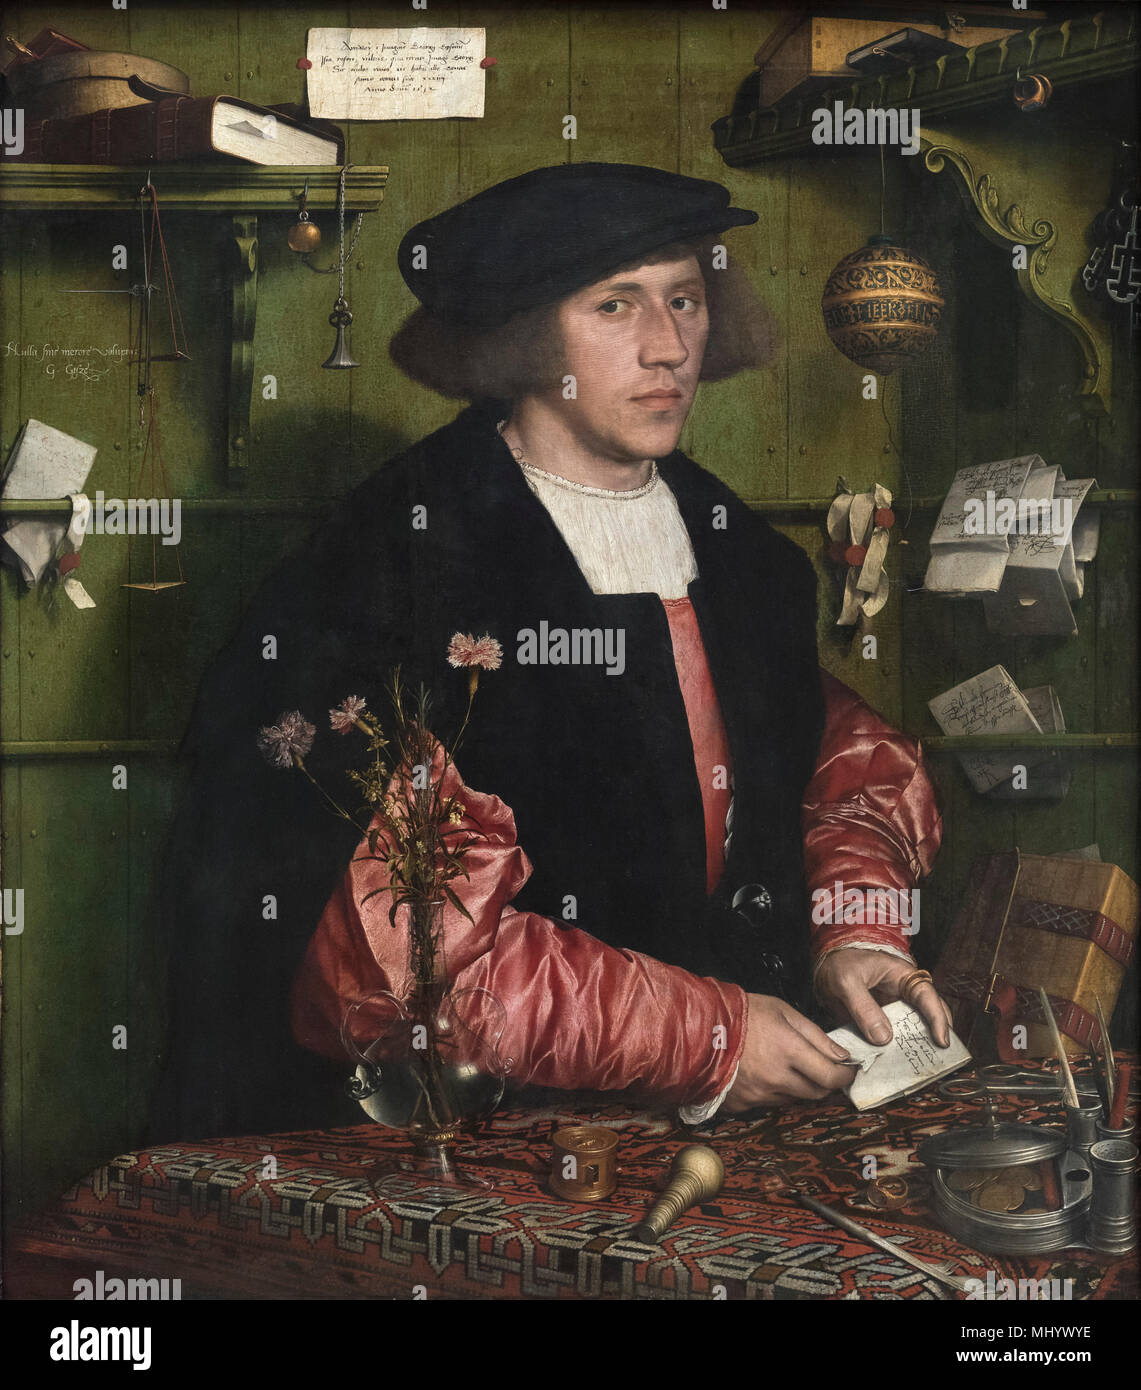 Hans Holbein the Younger (1497-1543), Portrait of the Merchant Georg Gisze (1497-1562), 1532. Der Kaufmann Georg Gisze. - Stock Image